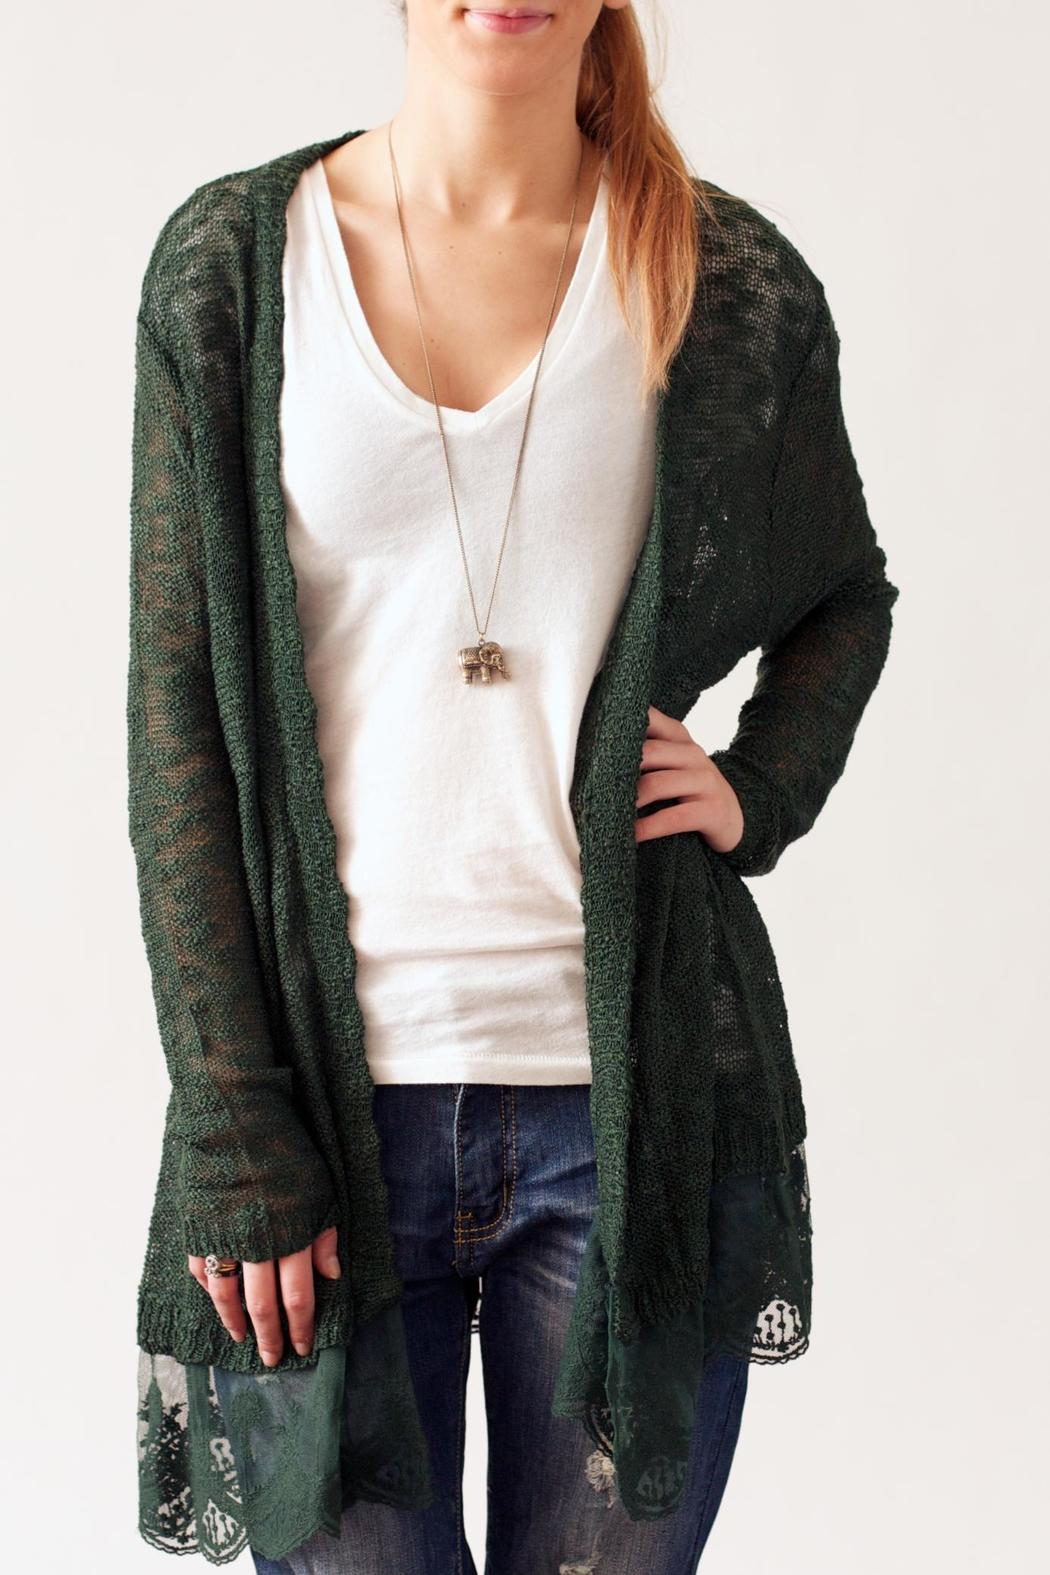 Cardigans And Necklaces: Umgee USA Lace Bottom Cardigan From Philadelphia By May 23